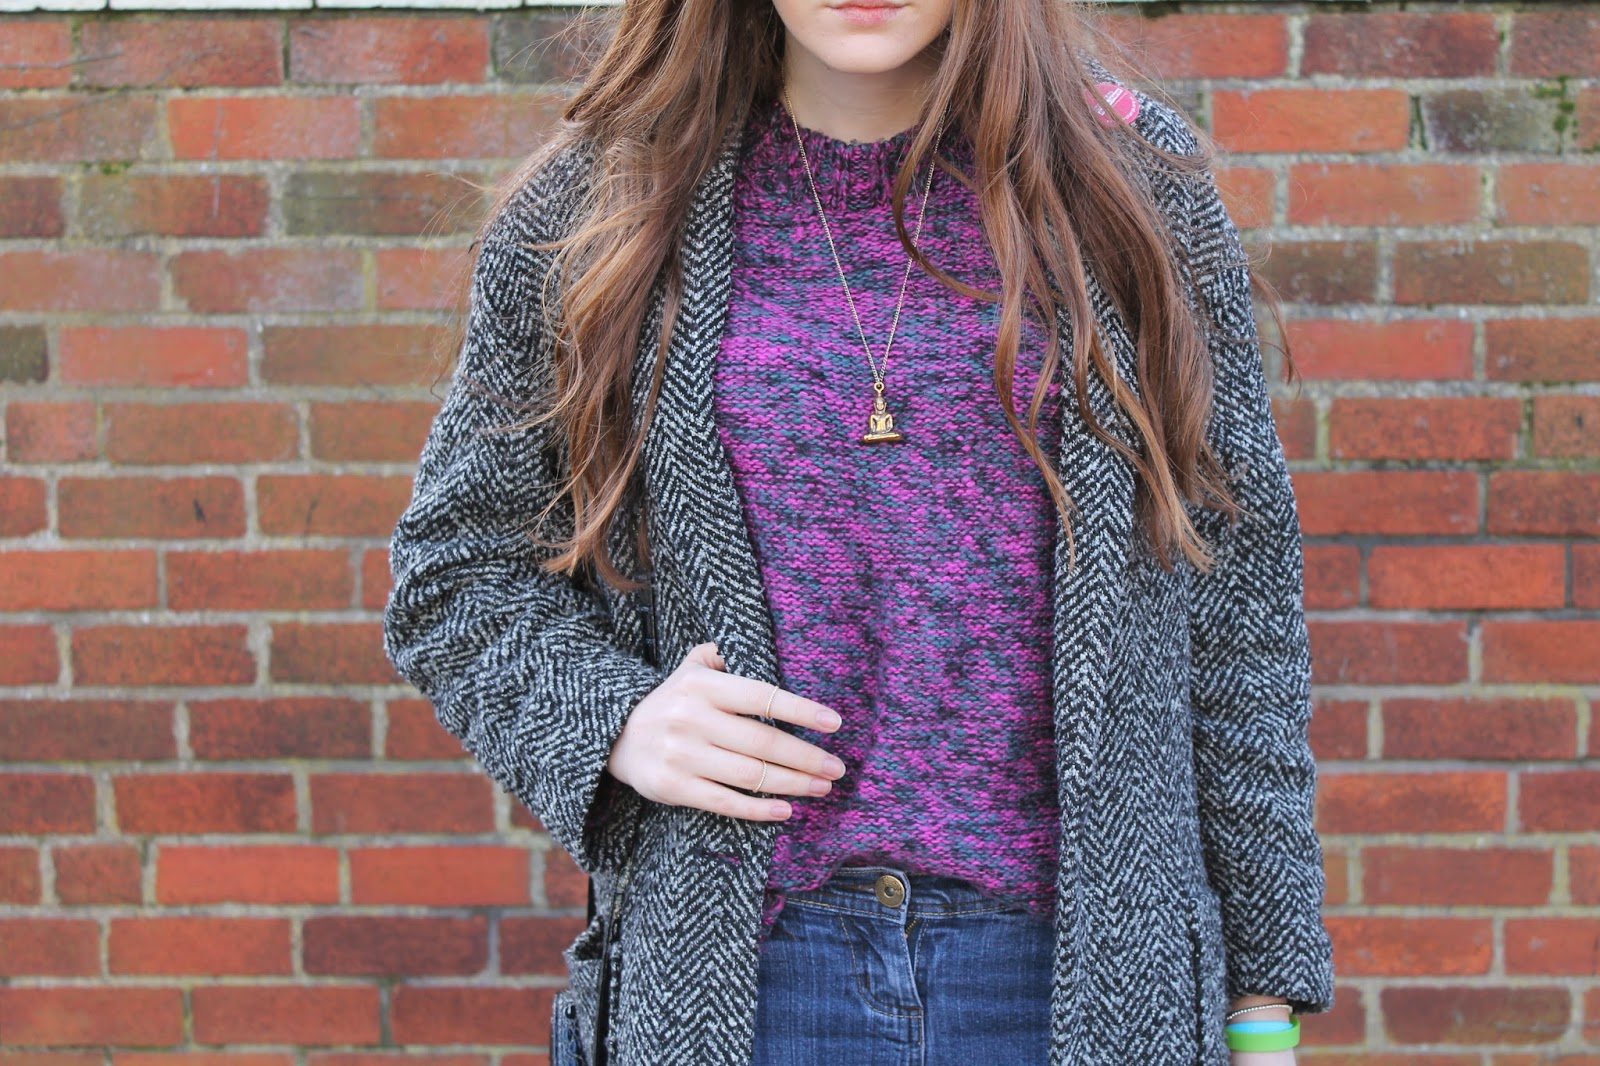 space dye jumper, henry holland jumper, tweed coat primark, buddha gold necklace